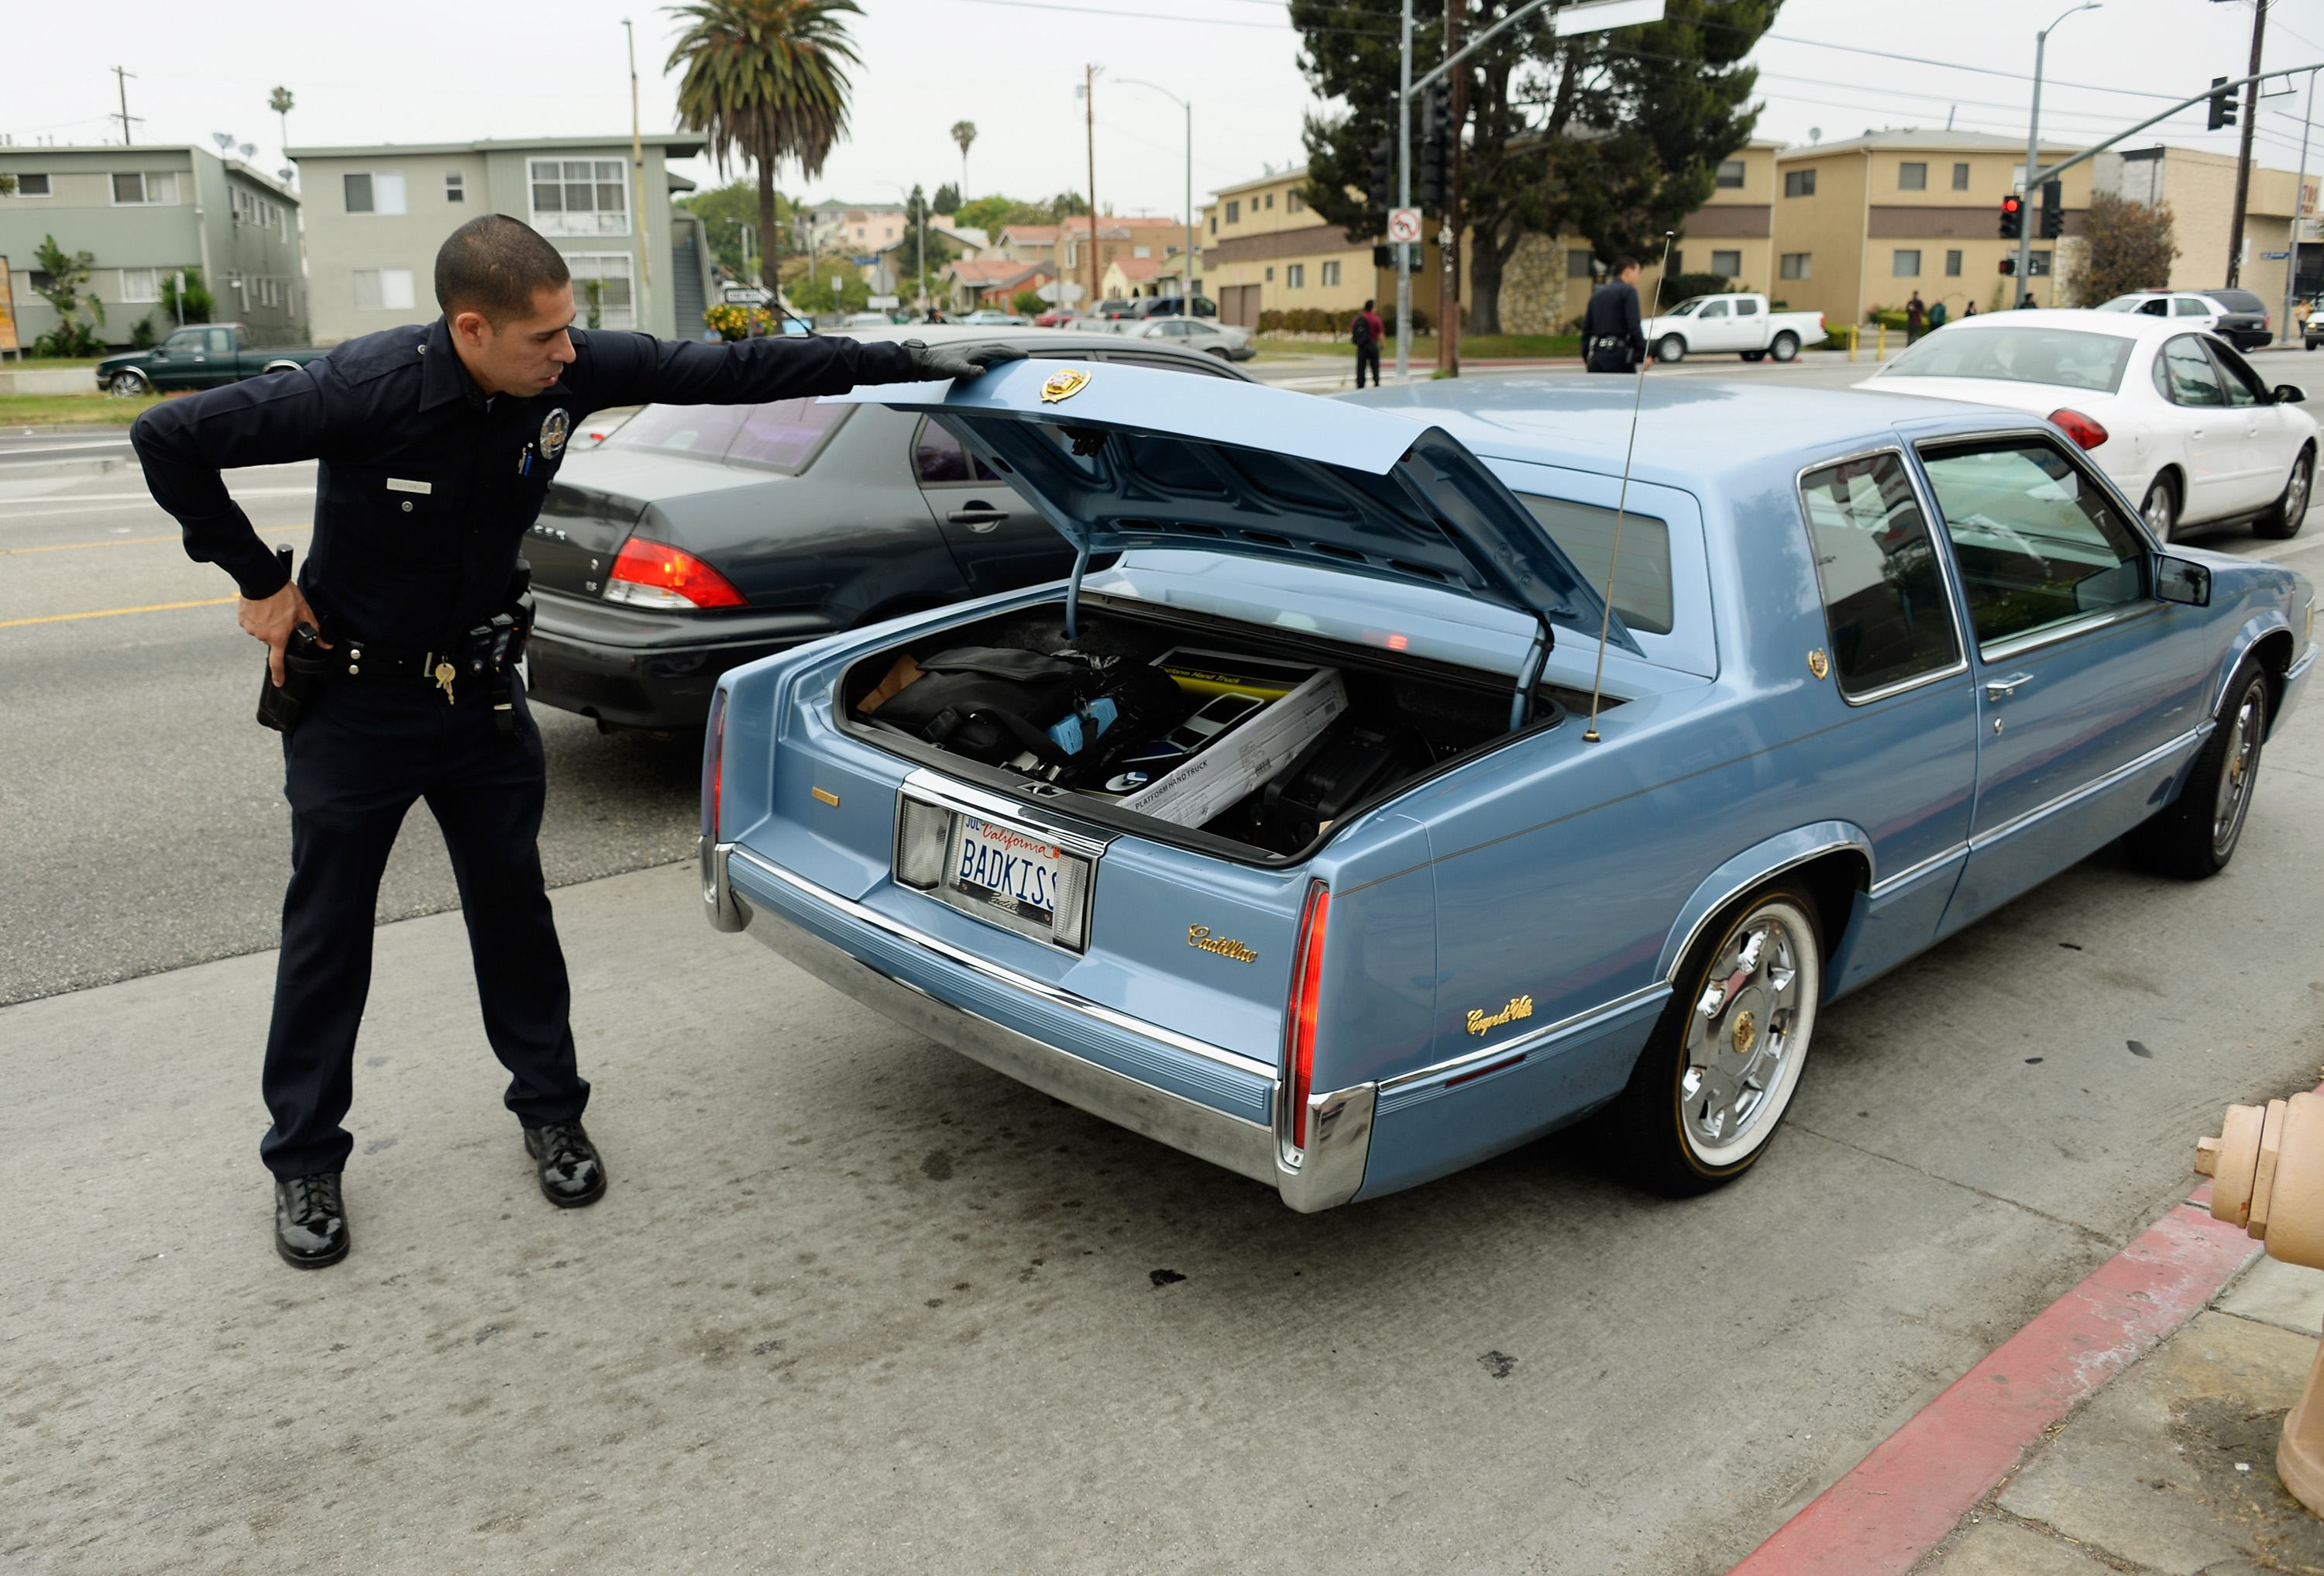 Los Angeles Police Department officers search cars